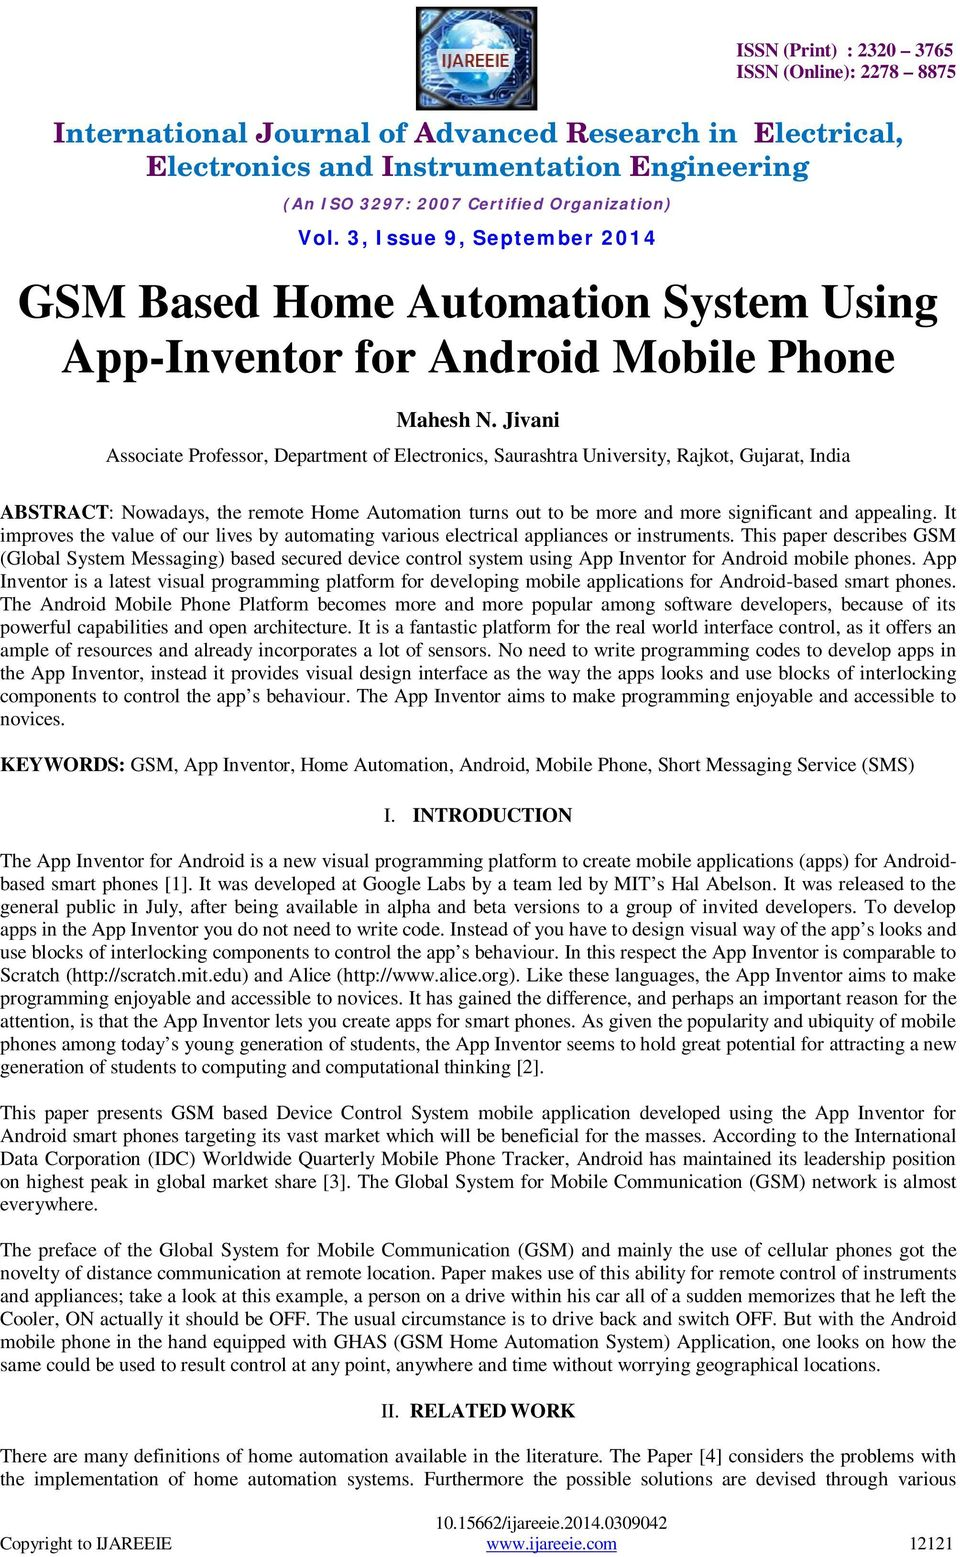 GSM Based Home Automation System Using App-Inventor for